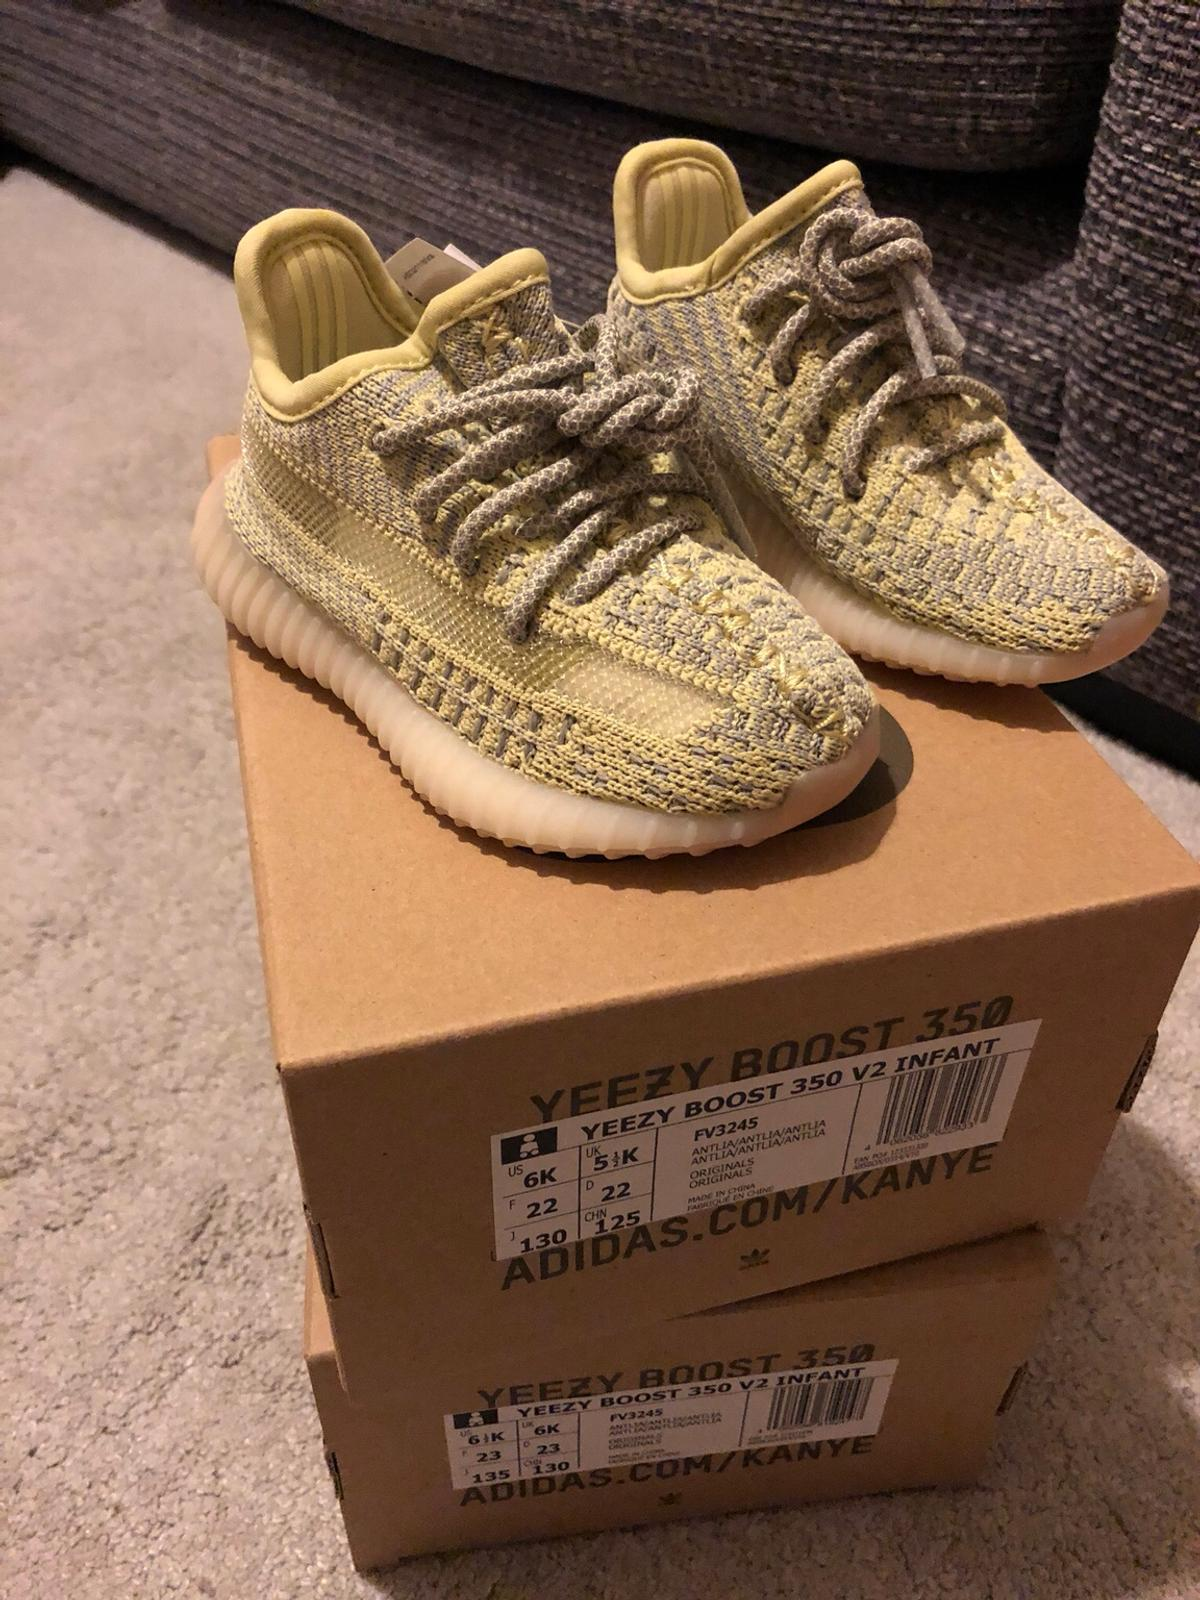 separation shoes f05c3 b82c7 Adidas yeezy 350 boost Antila toddlers